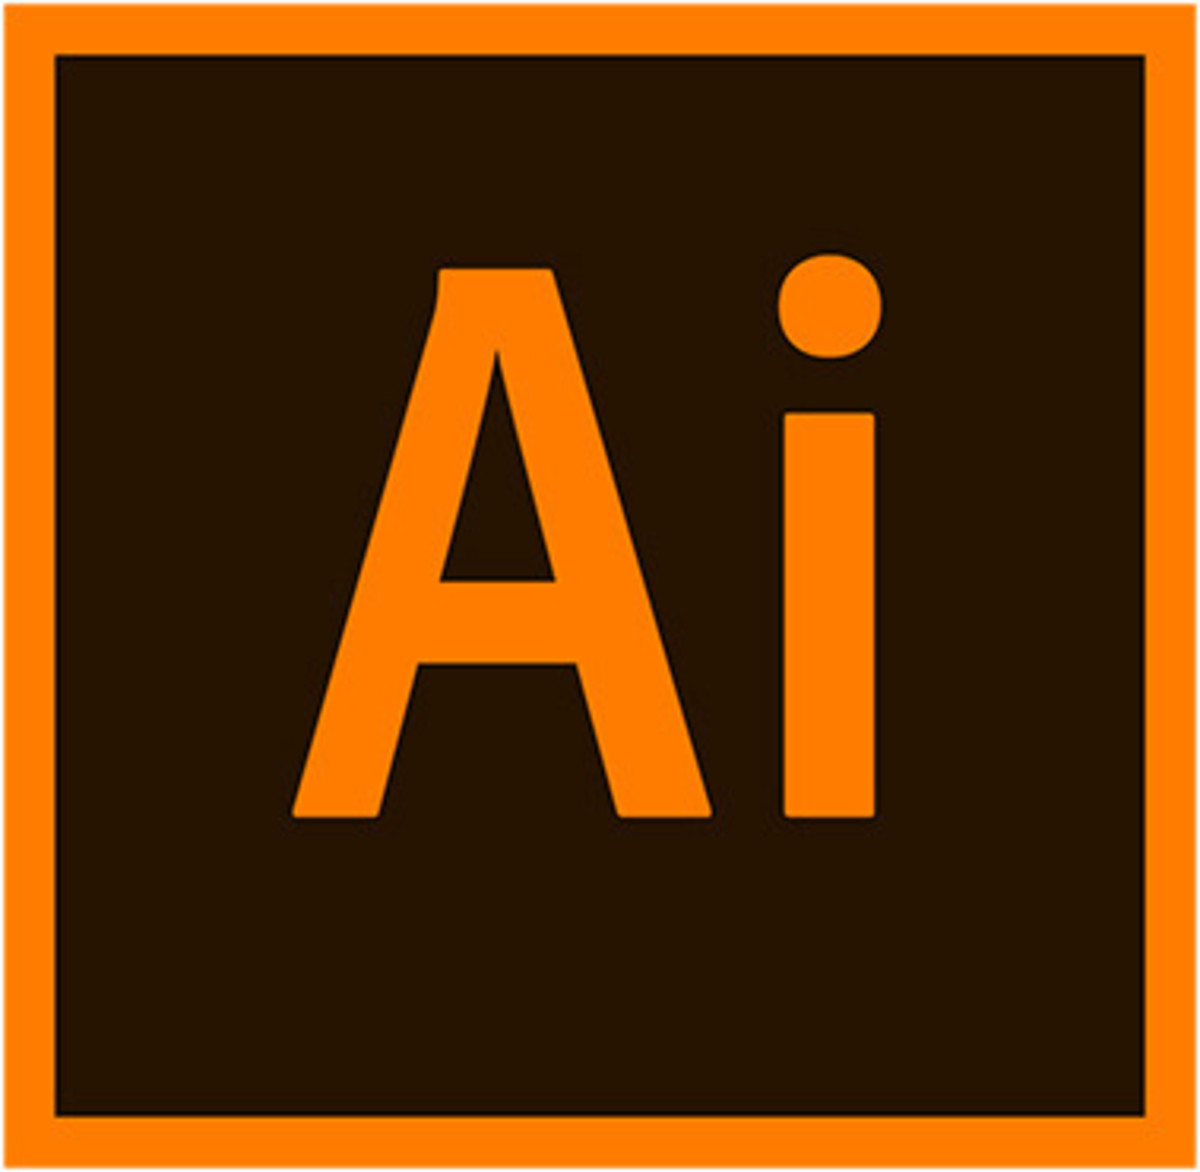 The above image is the logo for Adobe Illustrator